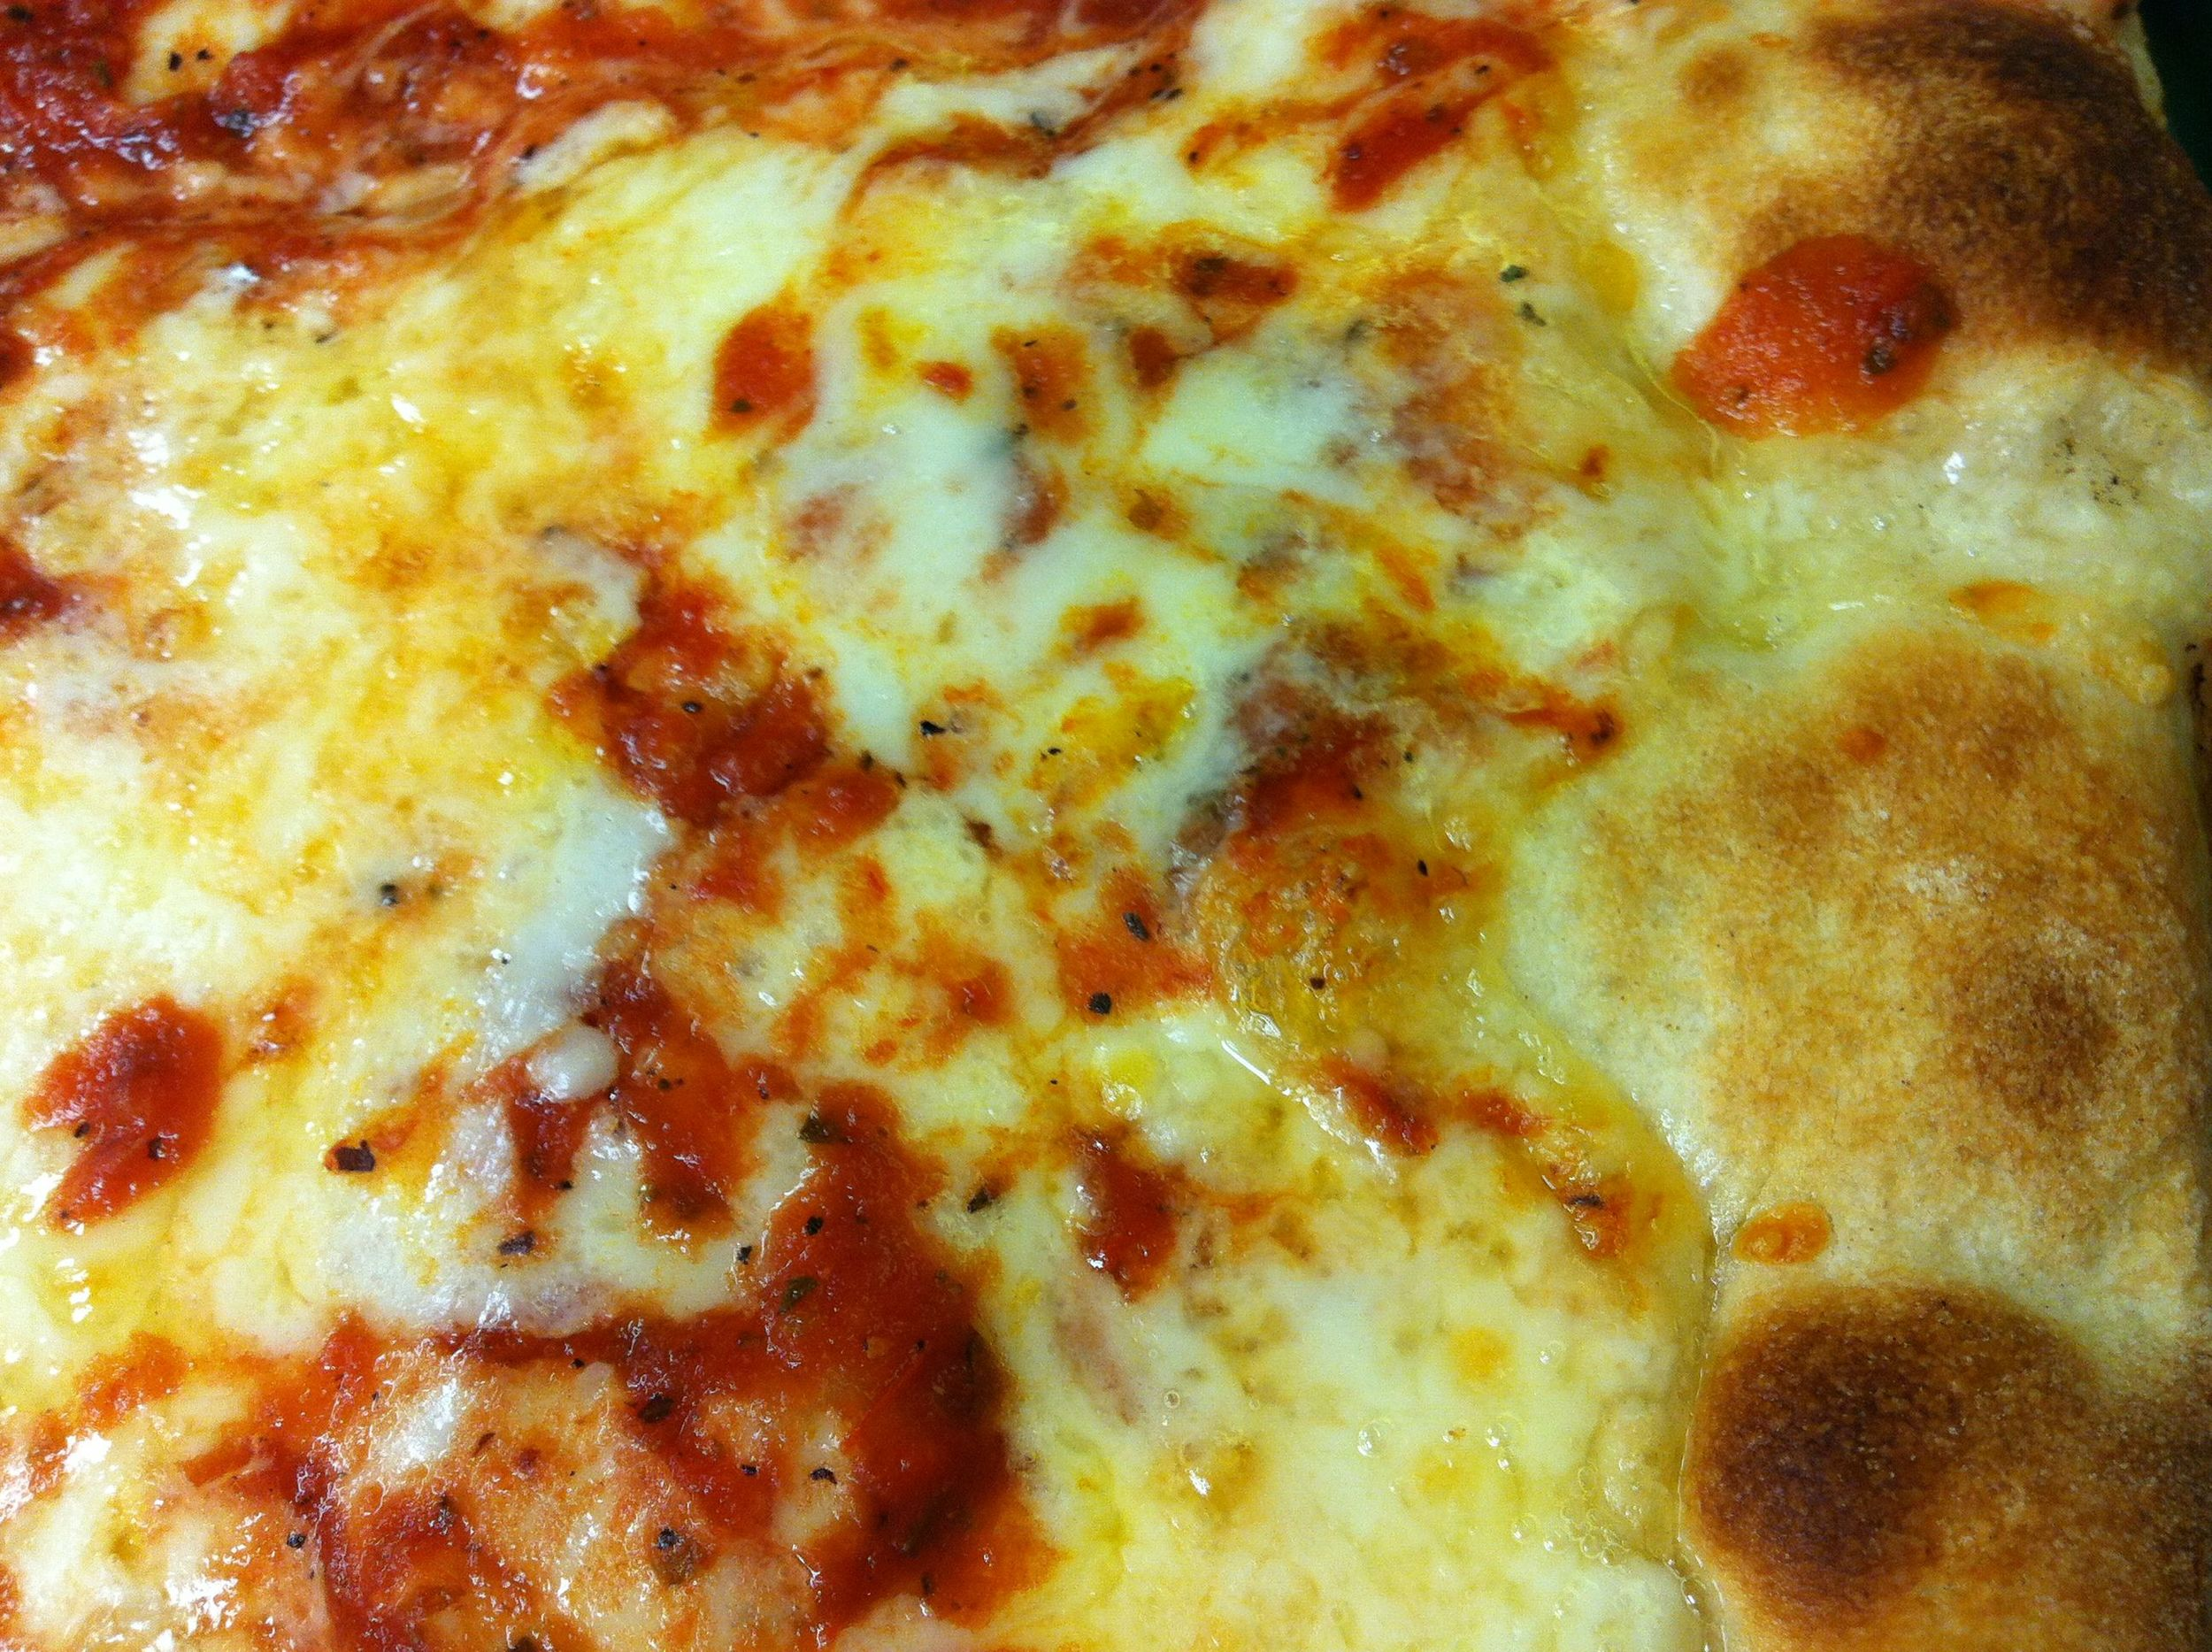 Behold: An extreme close-up of Mack and Manco (I know, it's Manco and Manco, I get it!) pizza.